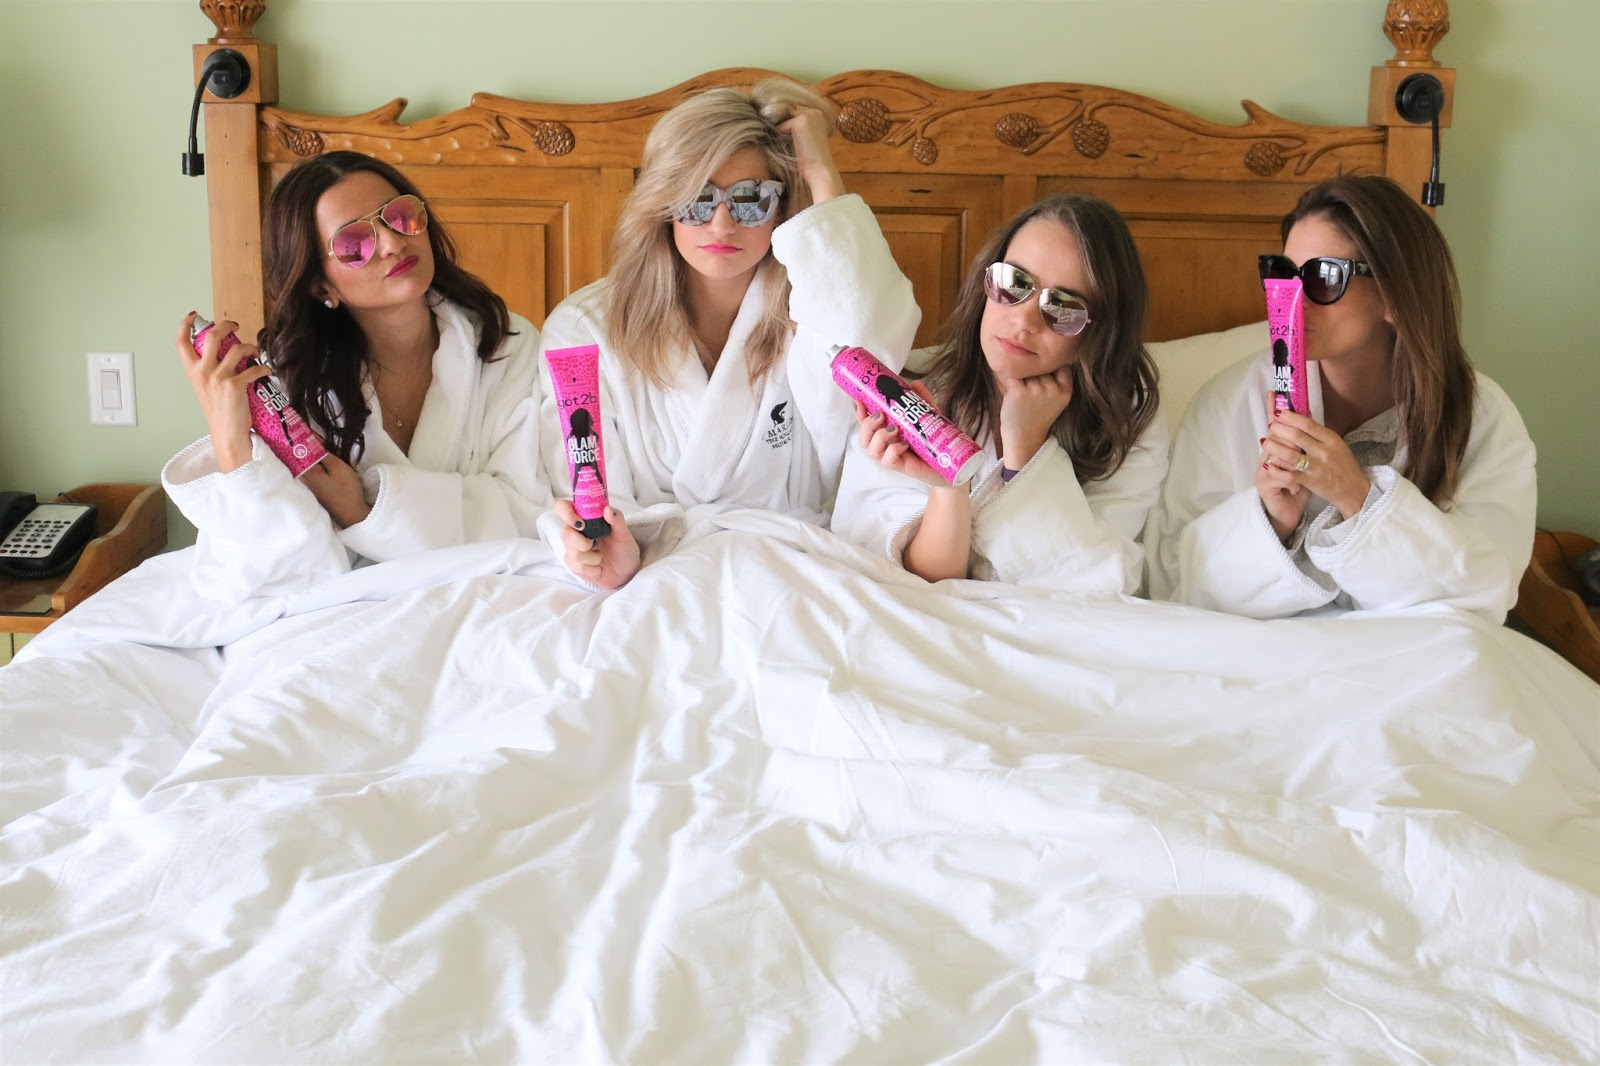 Bijuleni - 3 Things to Pack for a Girls Trip in the Fall - Hair products - Friendship goals